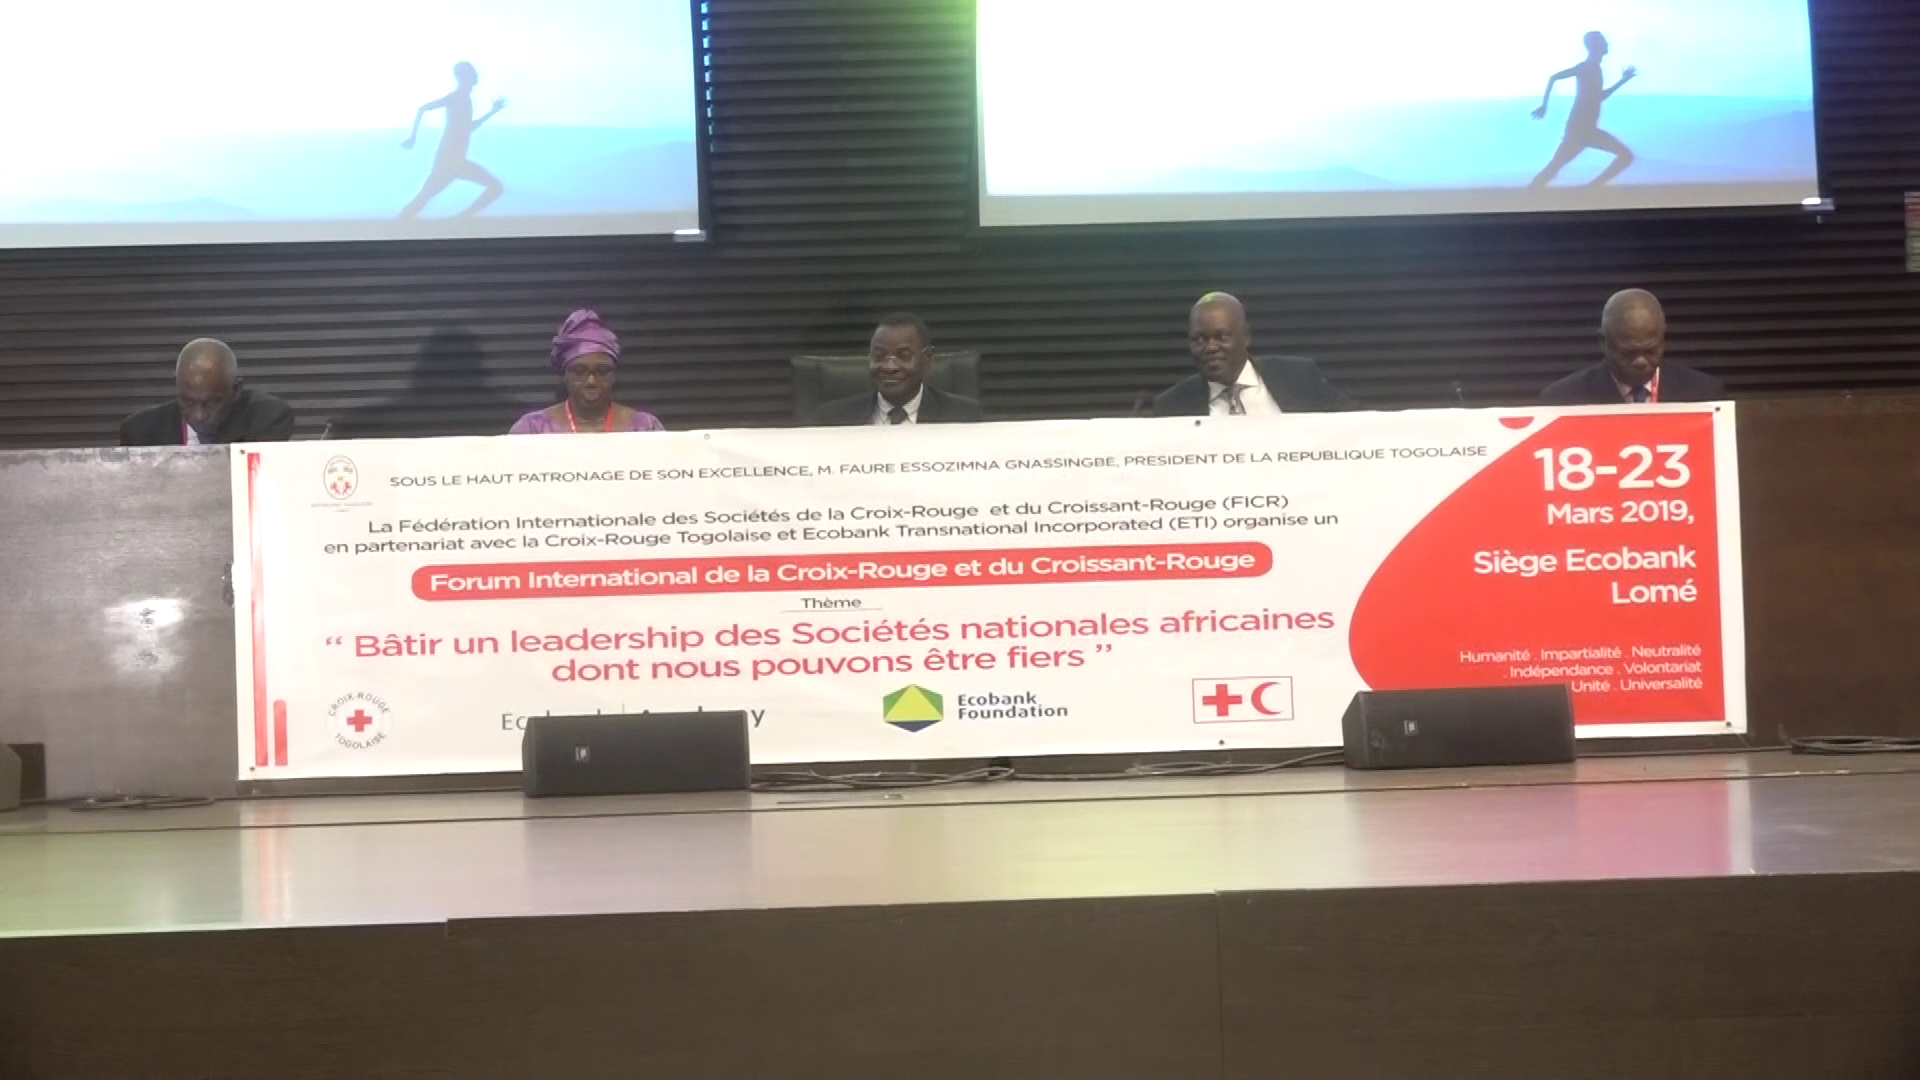 FORUM INTERNATONALE SUR BATIR UN LEADERSHIP DES SOCIETES AFRICAINES/CROIX ROUGE